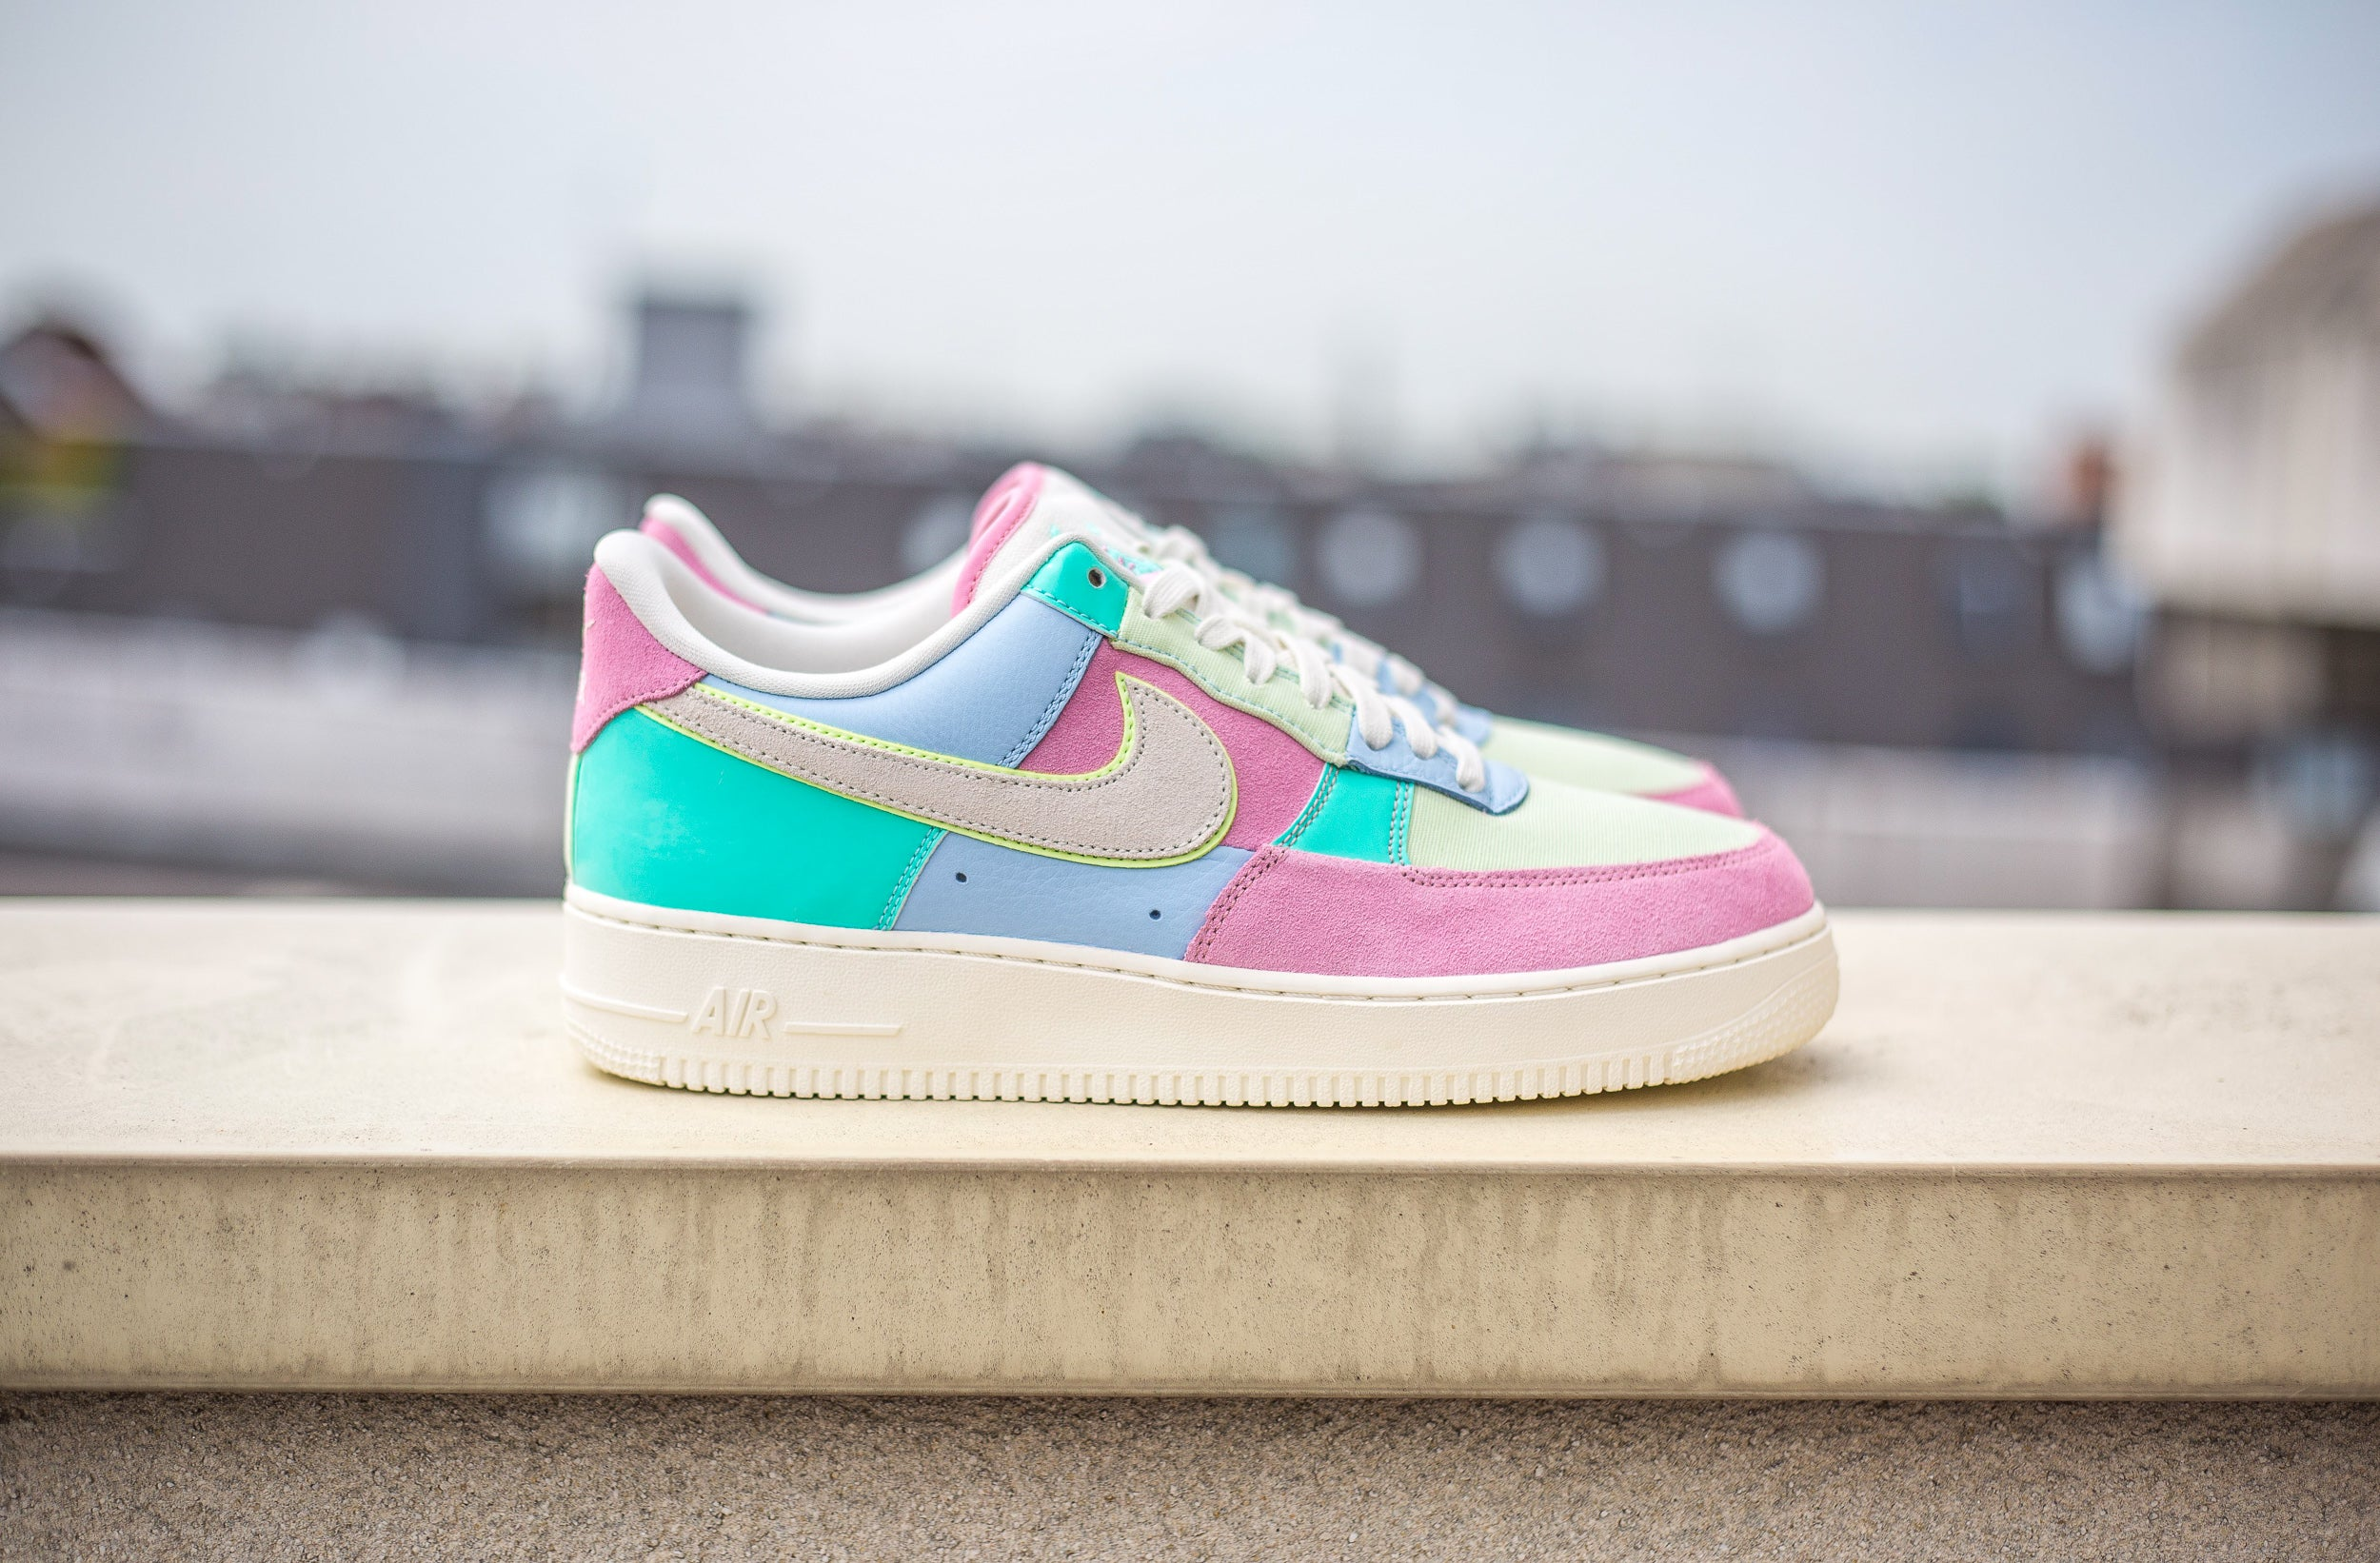 Nike Air Force 1 Low QS Easter Egg – LA BOITE COLLECTOR